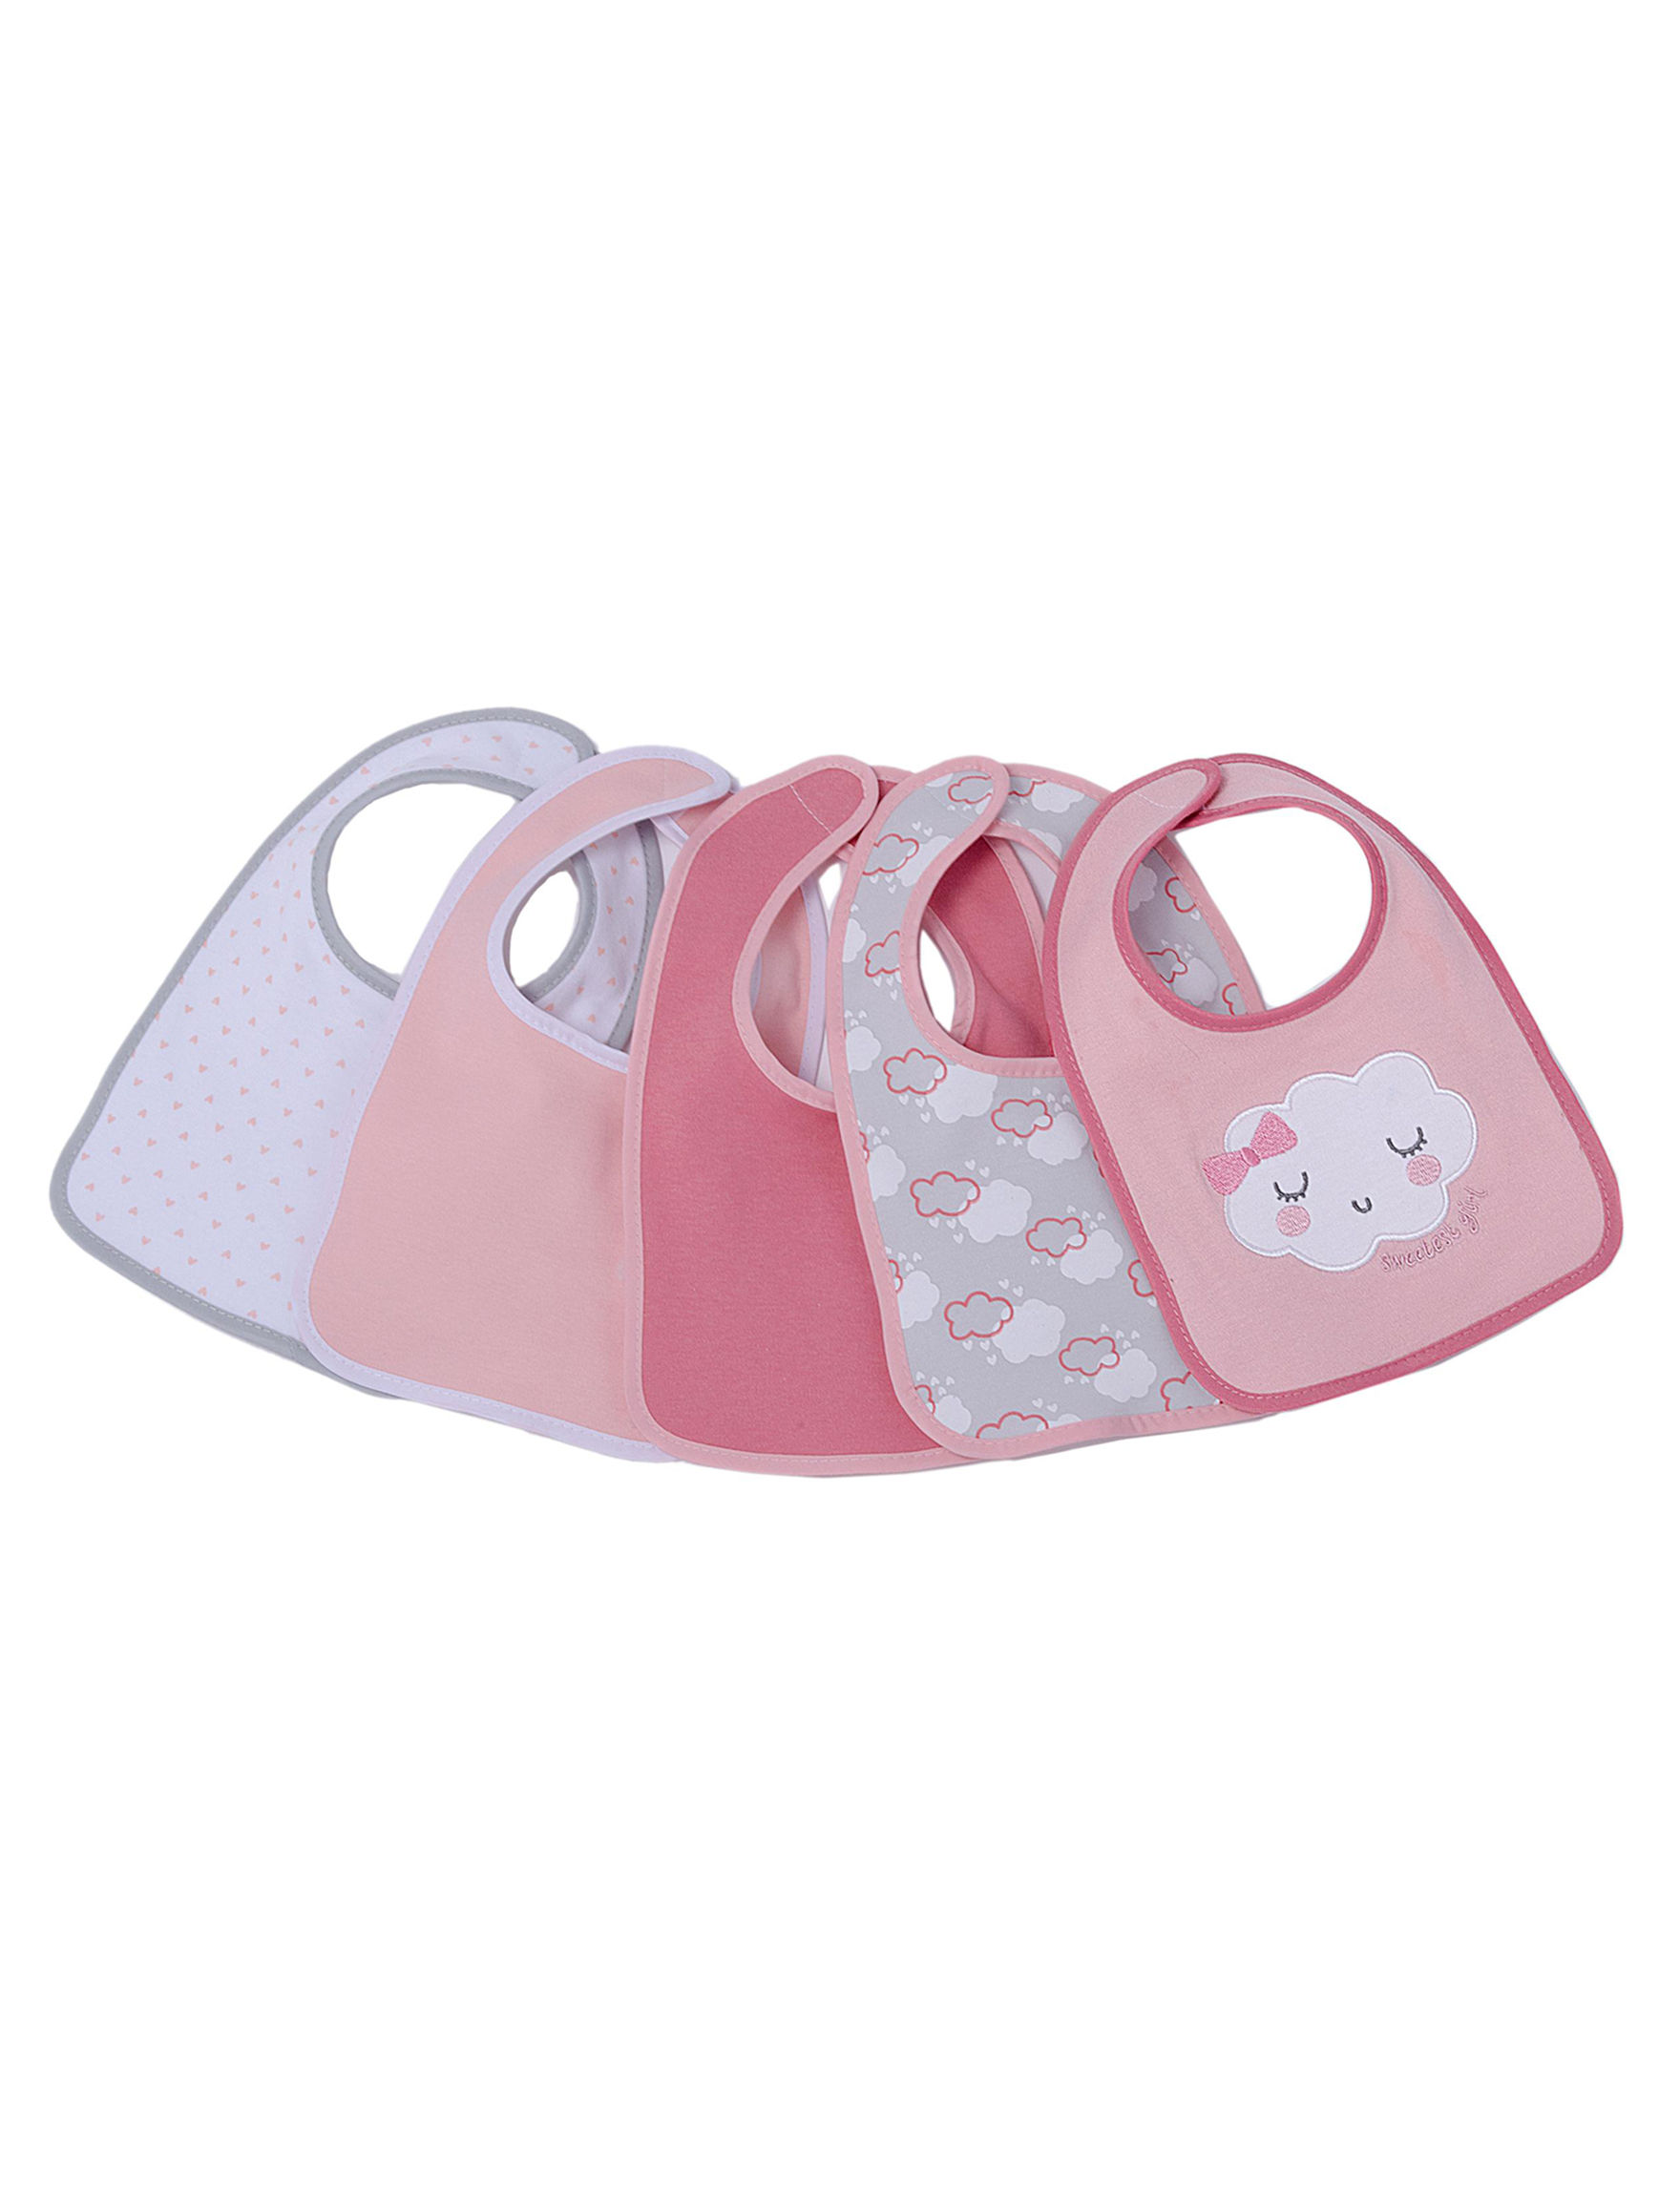 Cutie Pie Pink Bibs & Burp Cloths